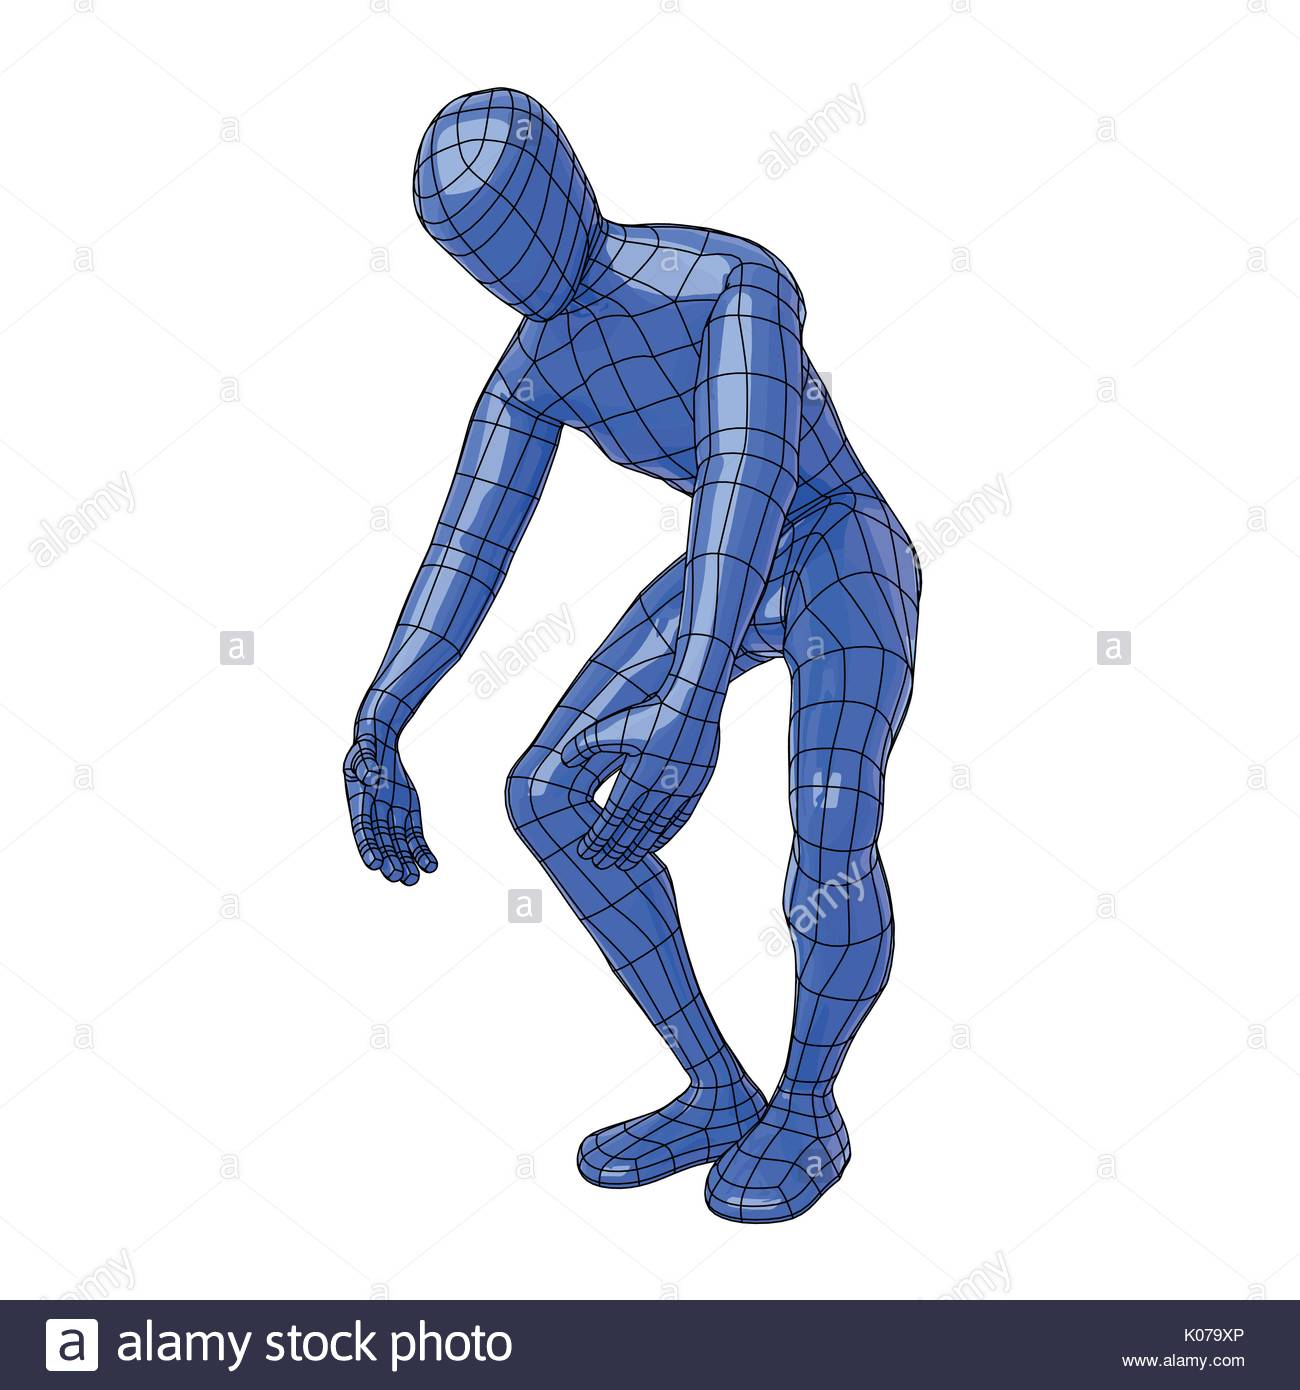 Futuristic wire mesh human figure lifting something weight with big effort. vector illustration - Stock Vector